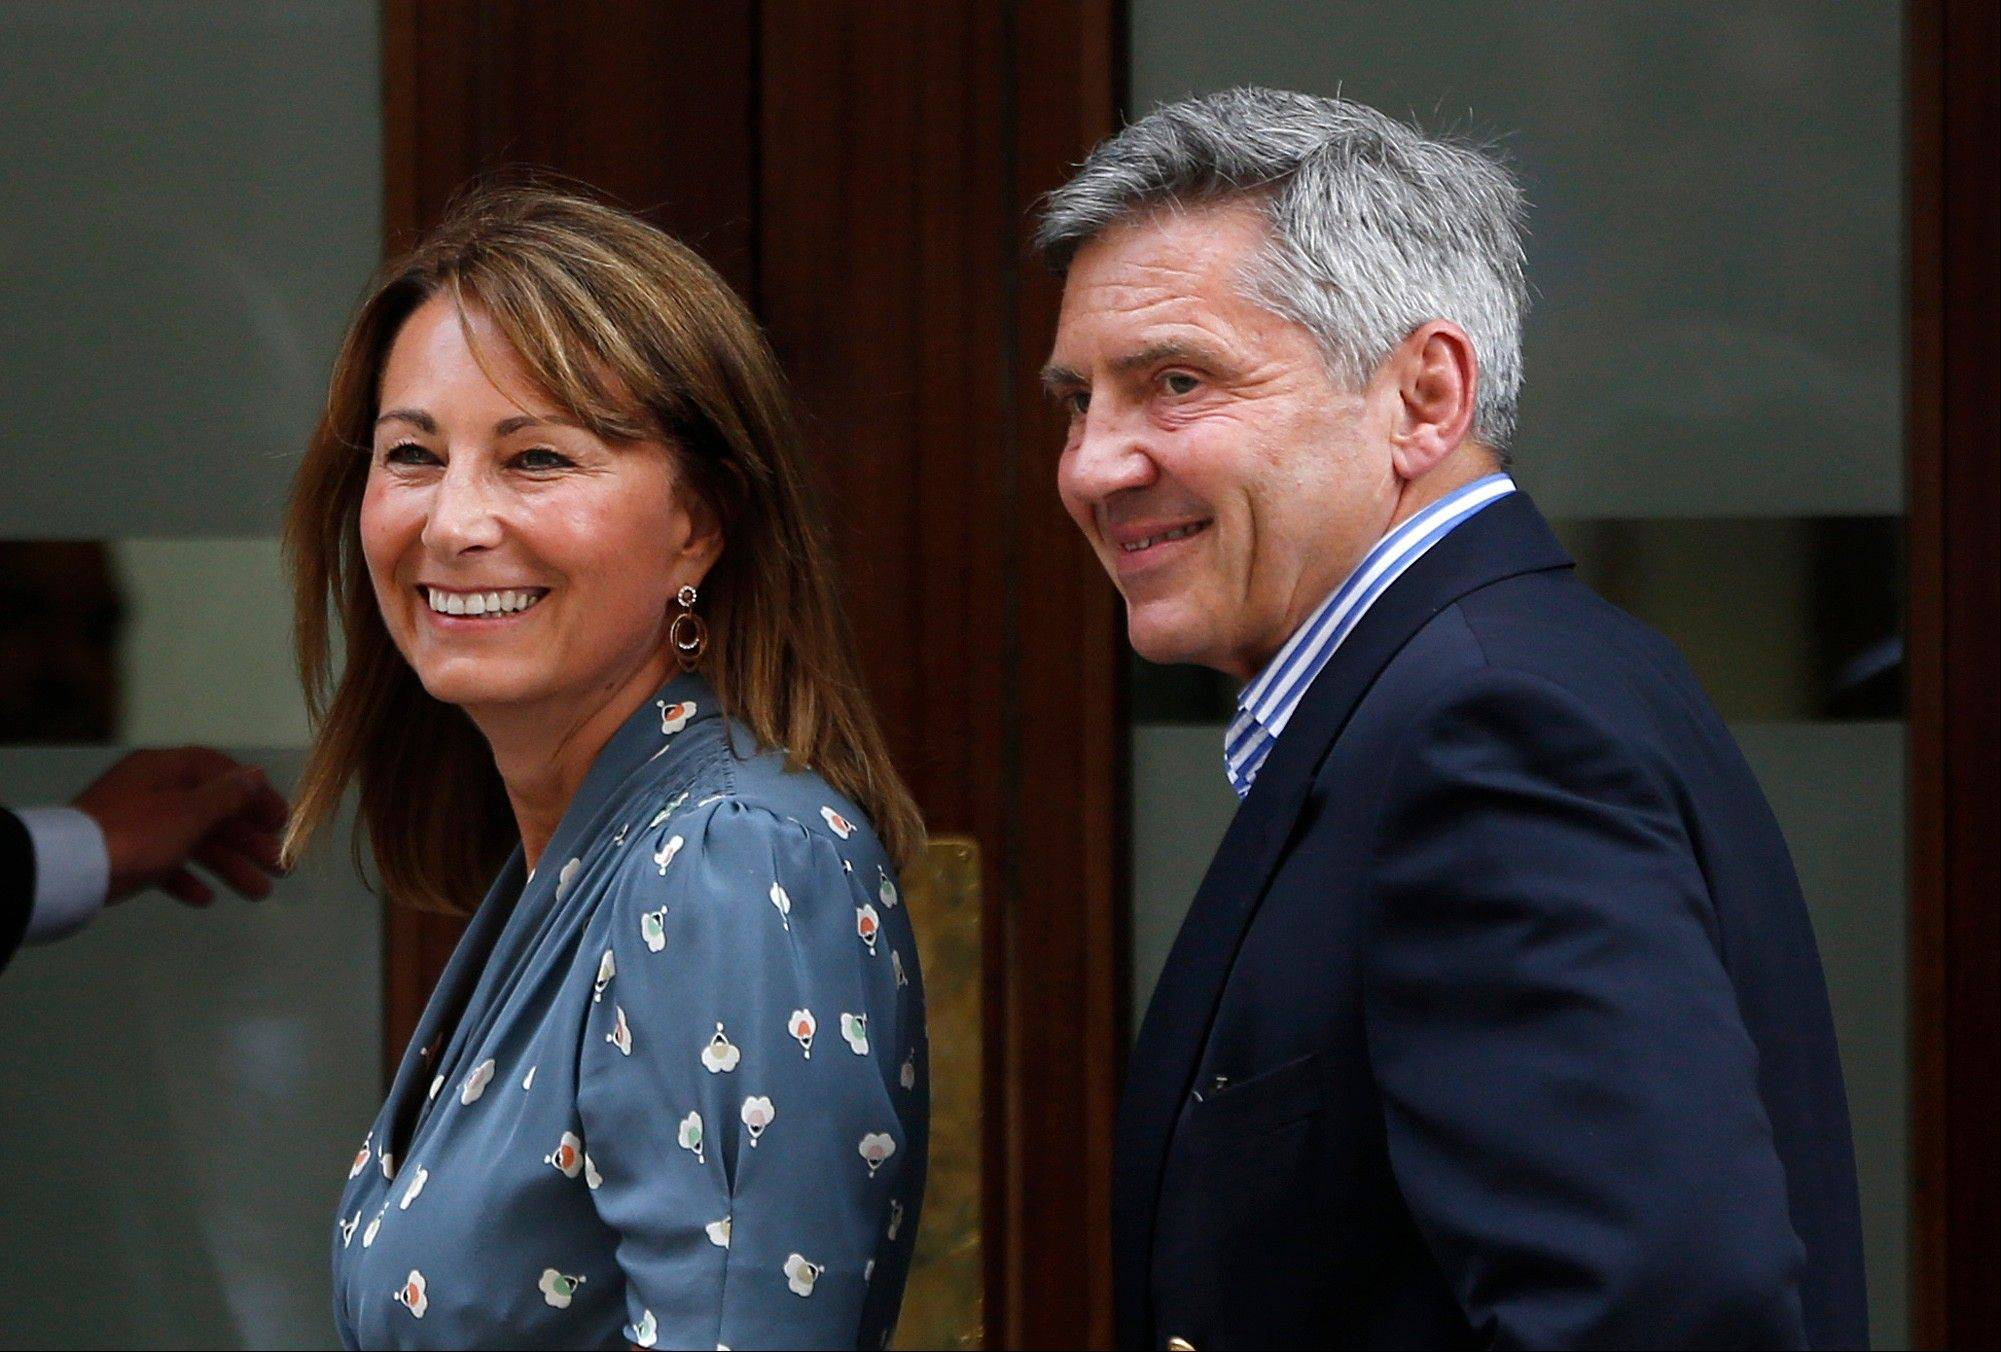 Carole and Michael Middleton, the parents Carole and Michael Middleton, the parents of Kate, Duchess of Cambridge, smile as they arrive at St. Mary's Hospital exclusive Lindo Wing in London, Tuesday.